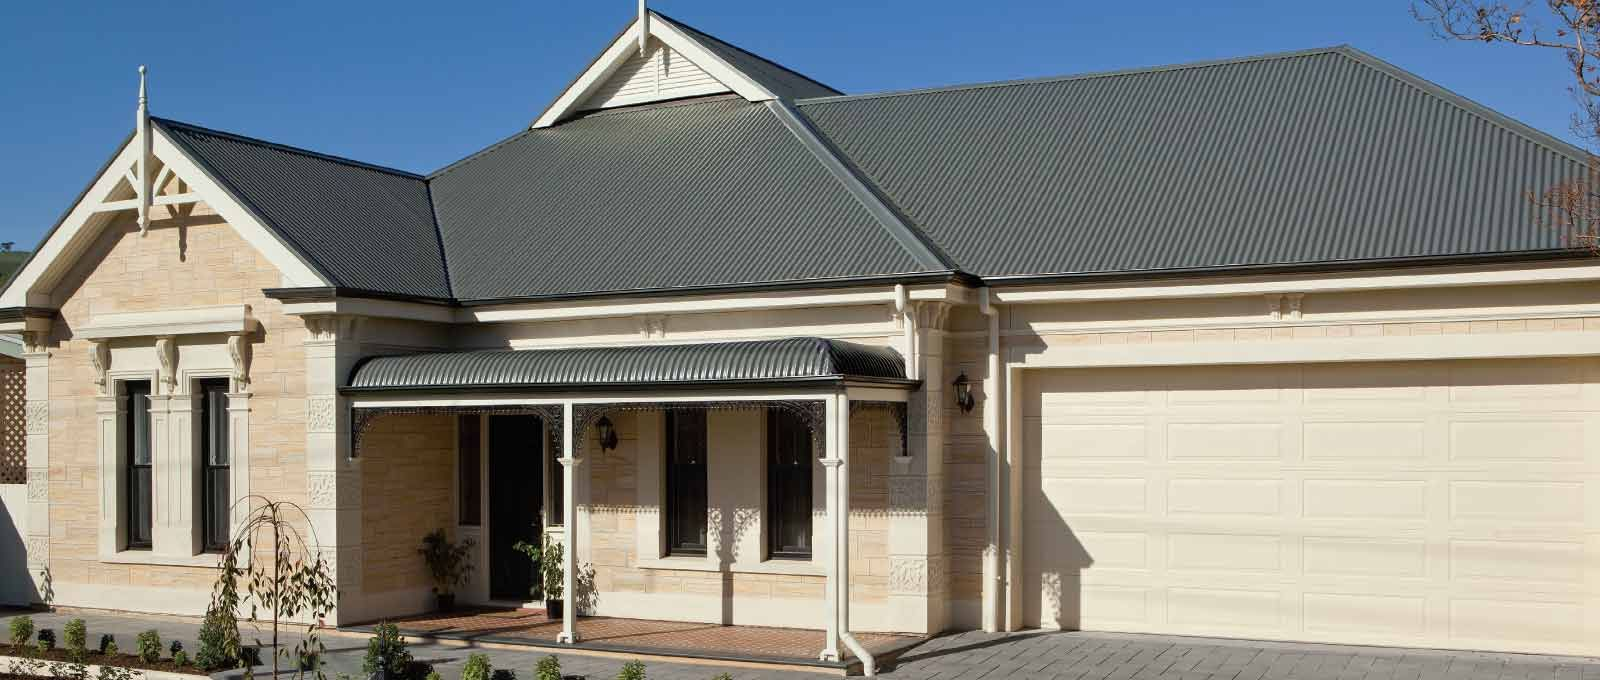 Colorbond roofing colours pictures to pin on pinterest - Image Result For Woodland Grey Roof Cream Coloured Bricks